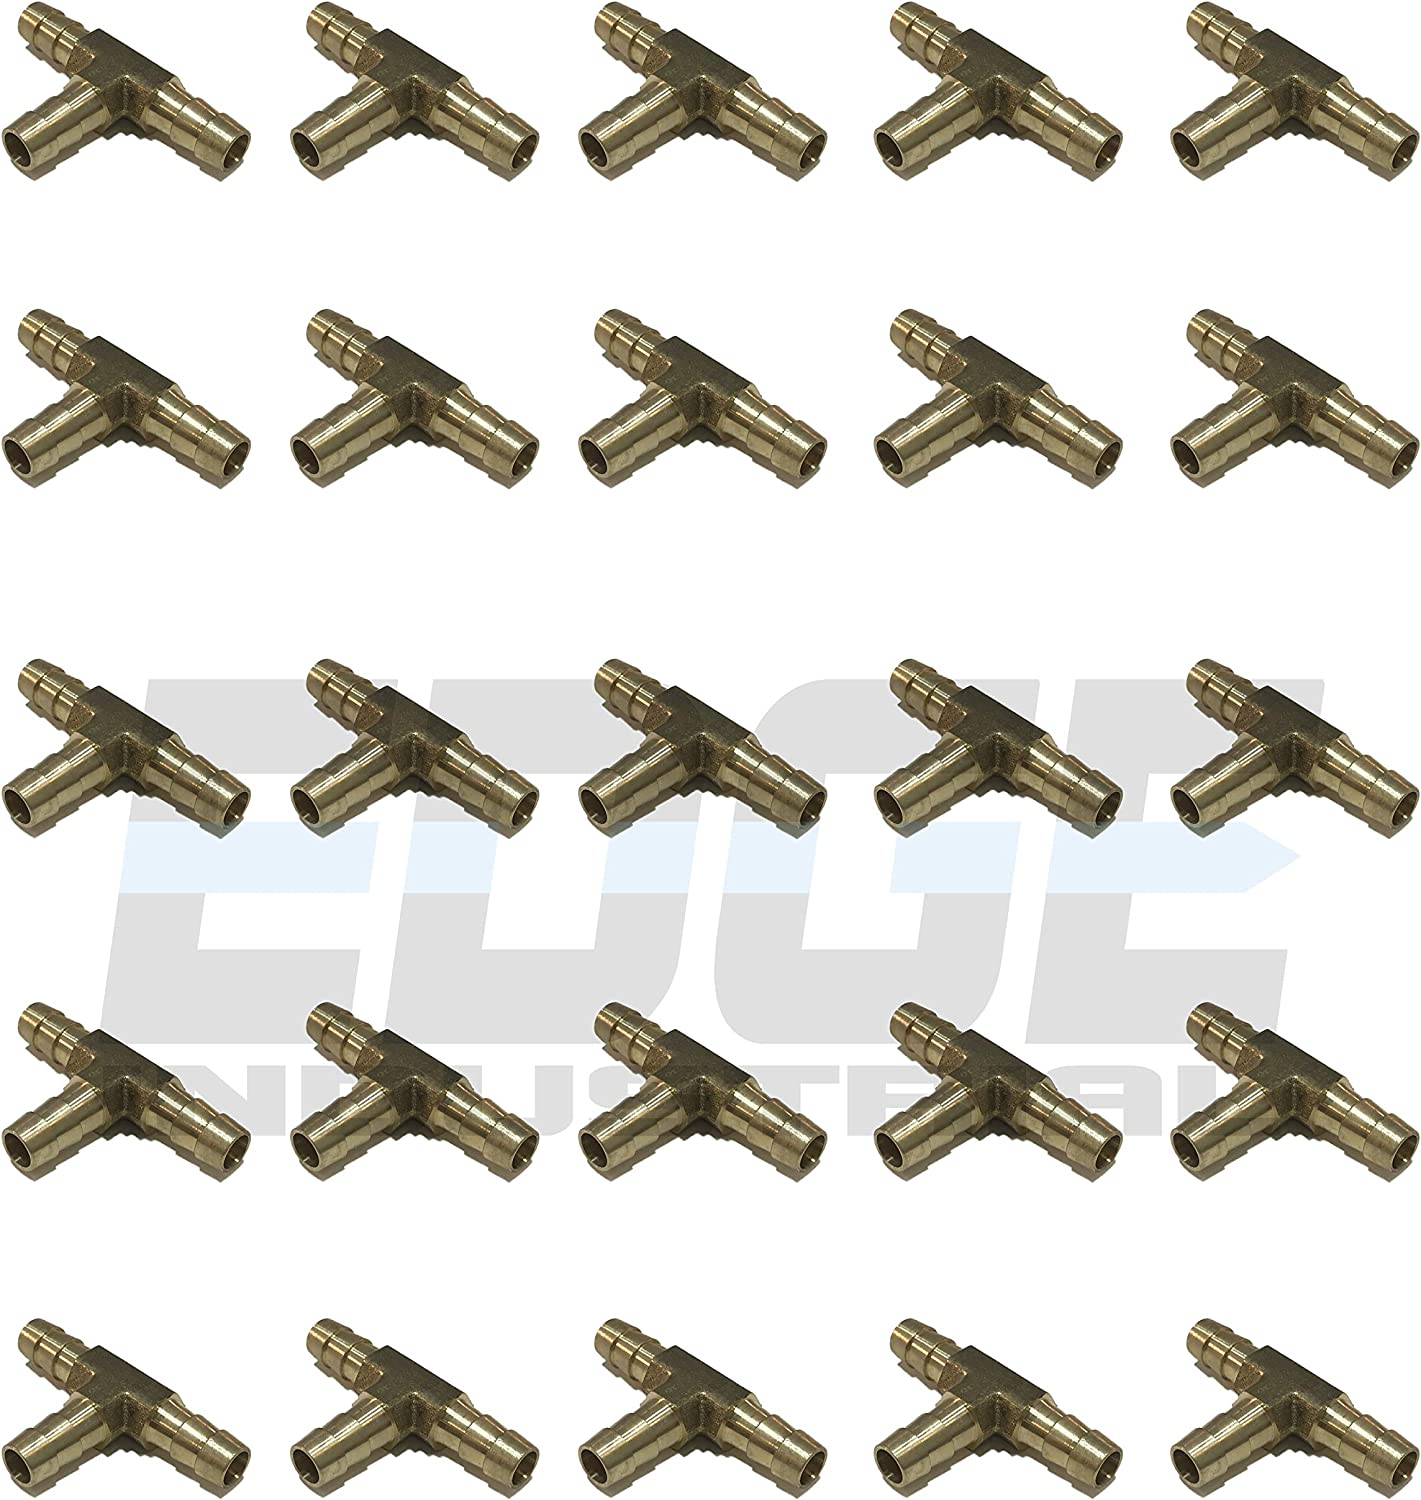 Gas WOG AIR Water Qty 25 Oil EDGE INDUSTRIAL 5//16 Hose ID Brass Hose Barb TEE SPLICER Fitting Fuel